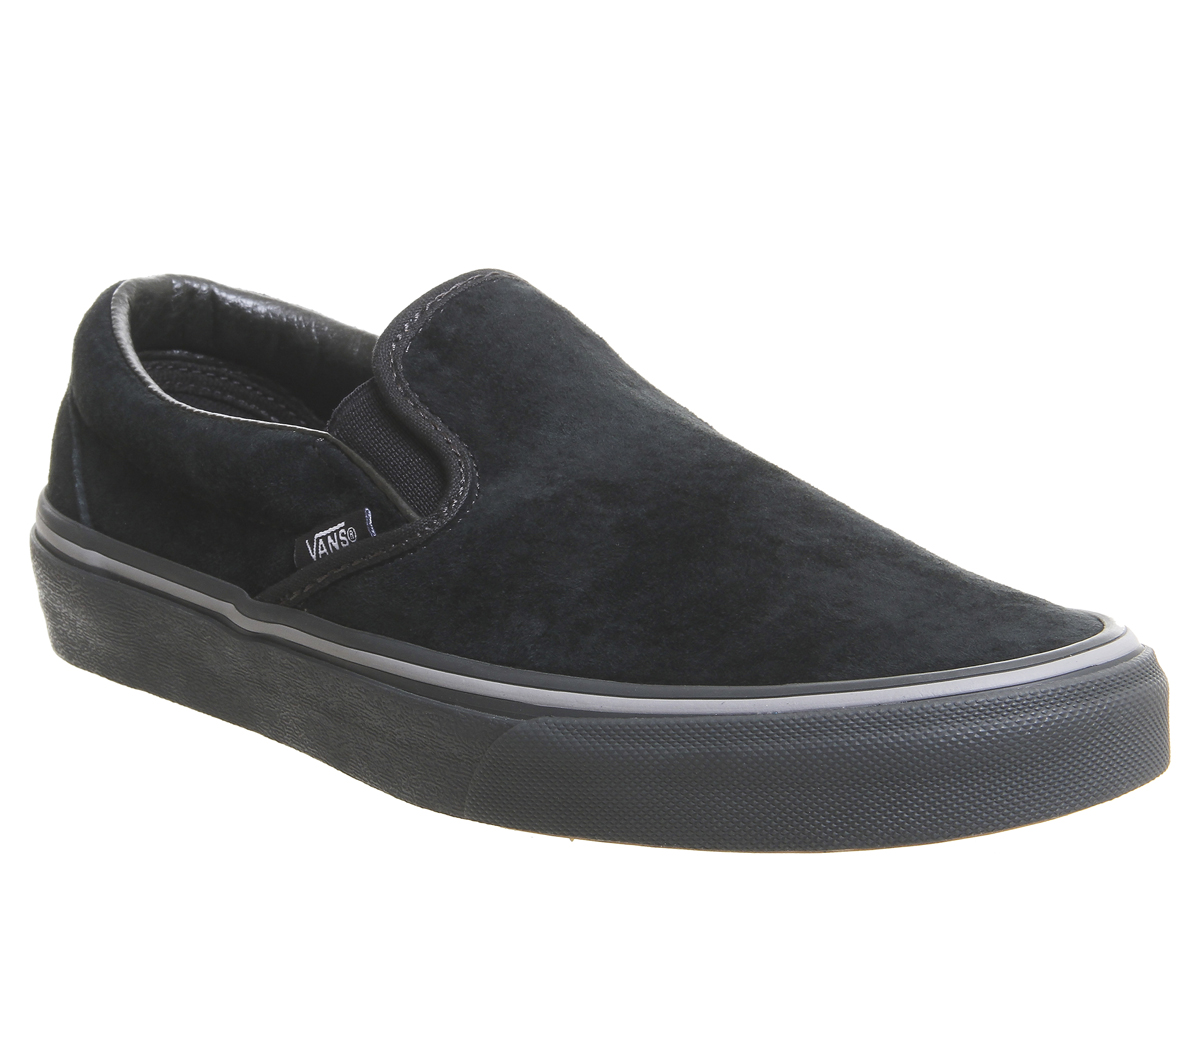 ec39fb6076 Sentinel Mens Vans Vans Classic Slip On Trainers Pirate Black Frost Grey  Exclusive Traine